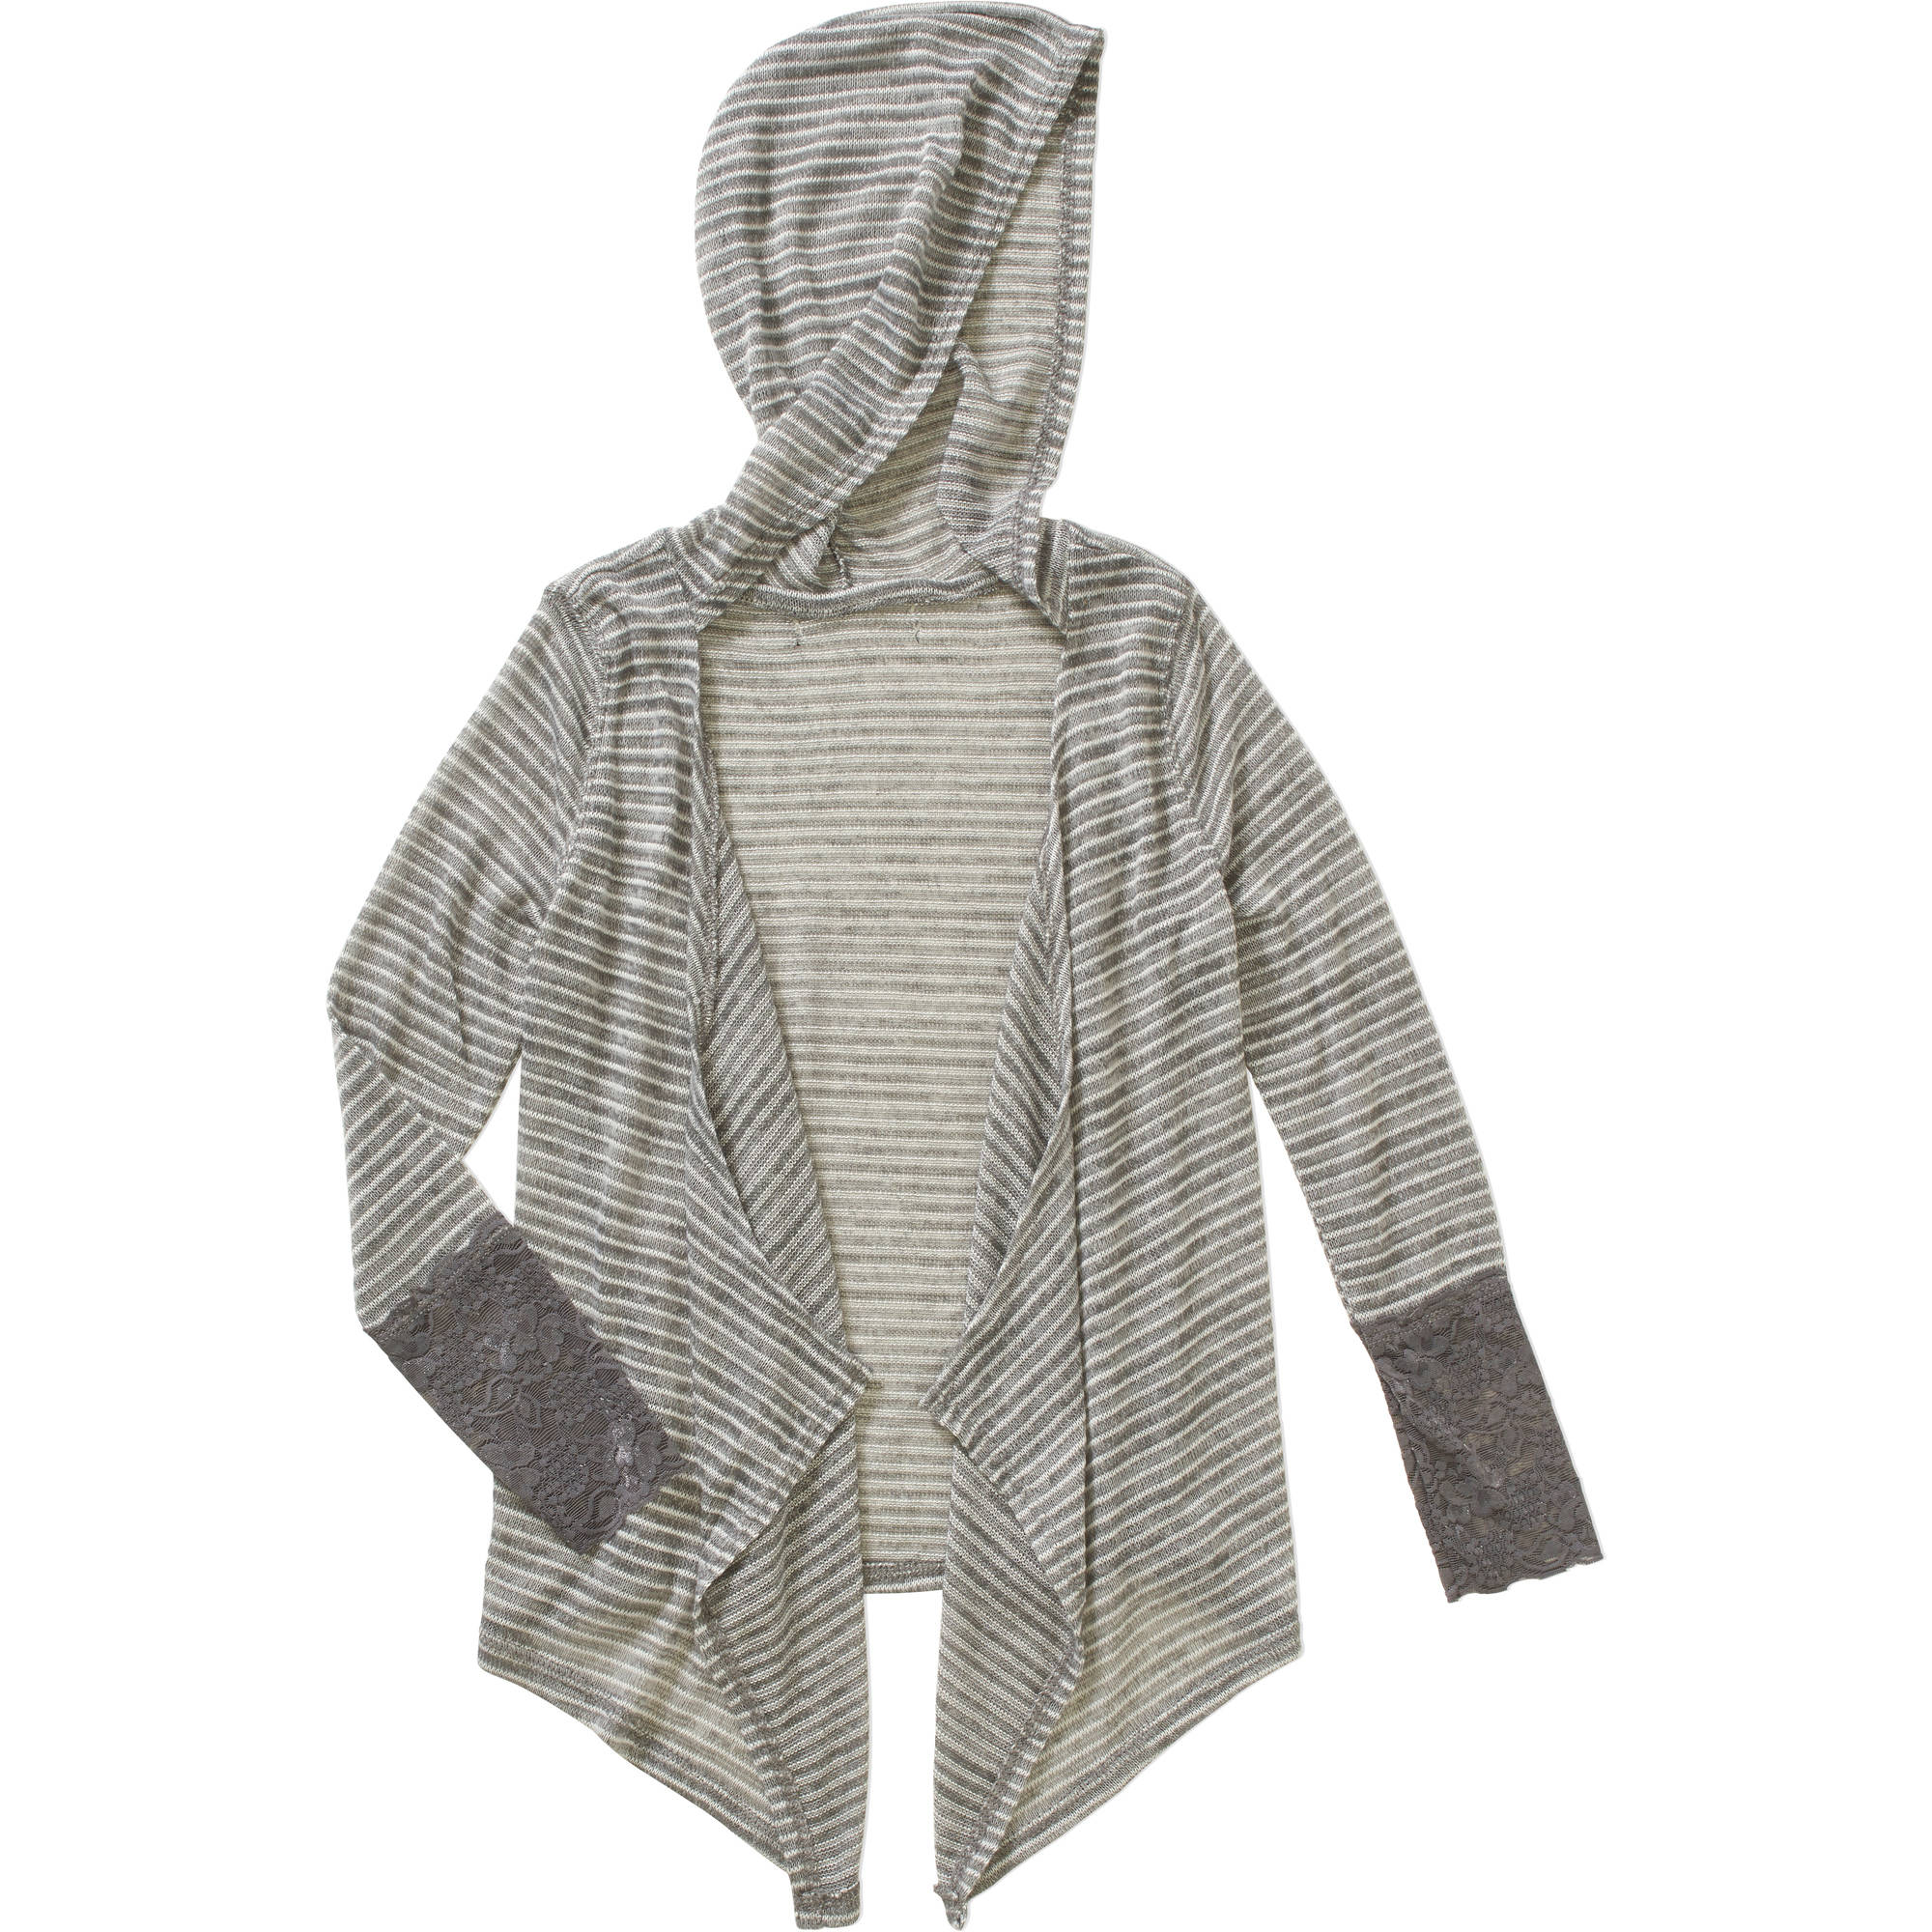 Girls' Super Soft Yummy Striped Cardigan with Lace Cuffs